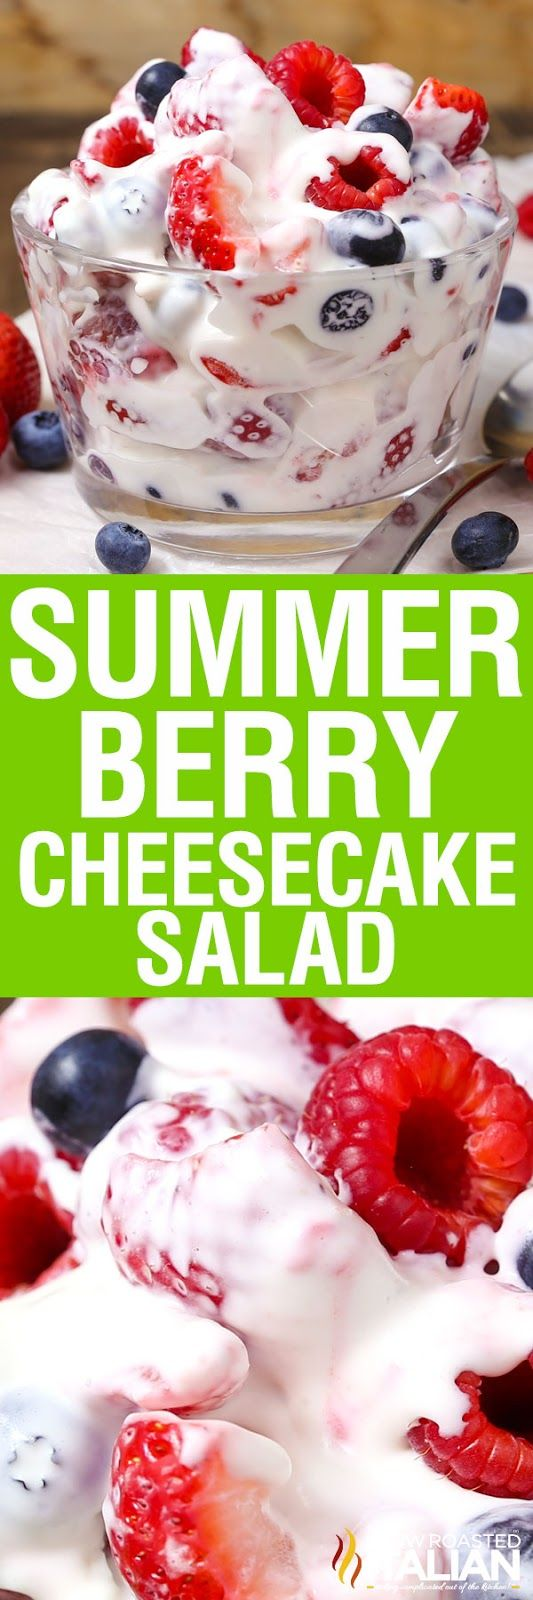 Summer Berry Cheesecake Salad (With Video)